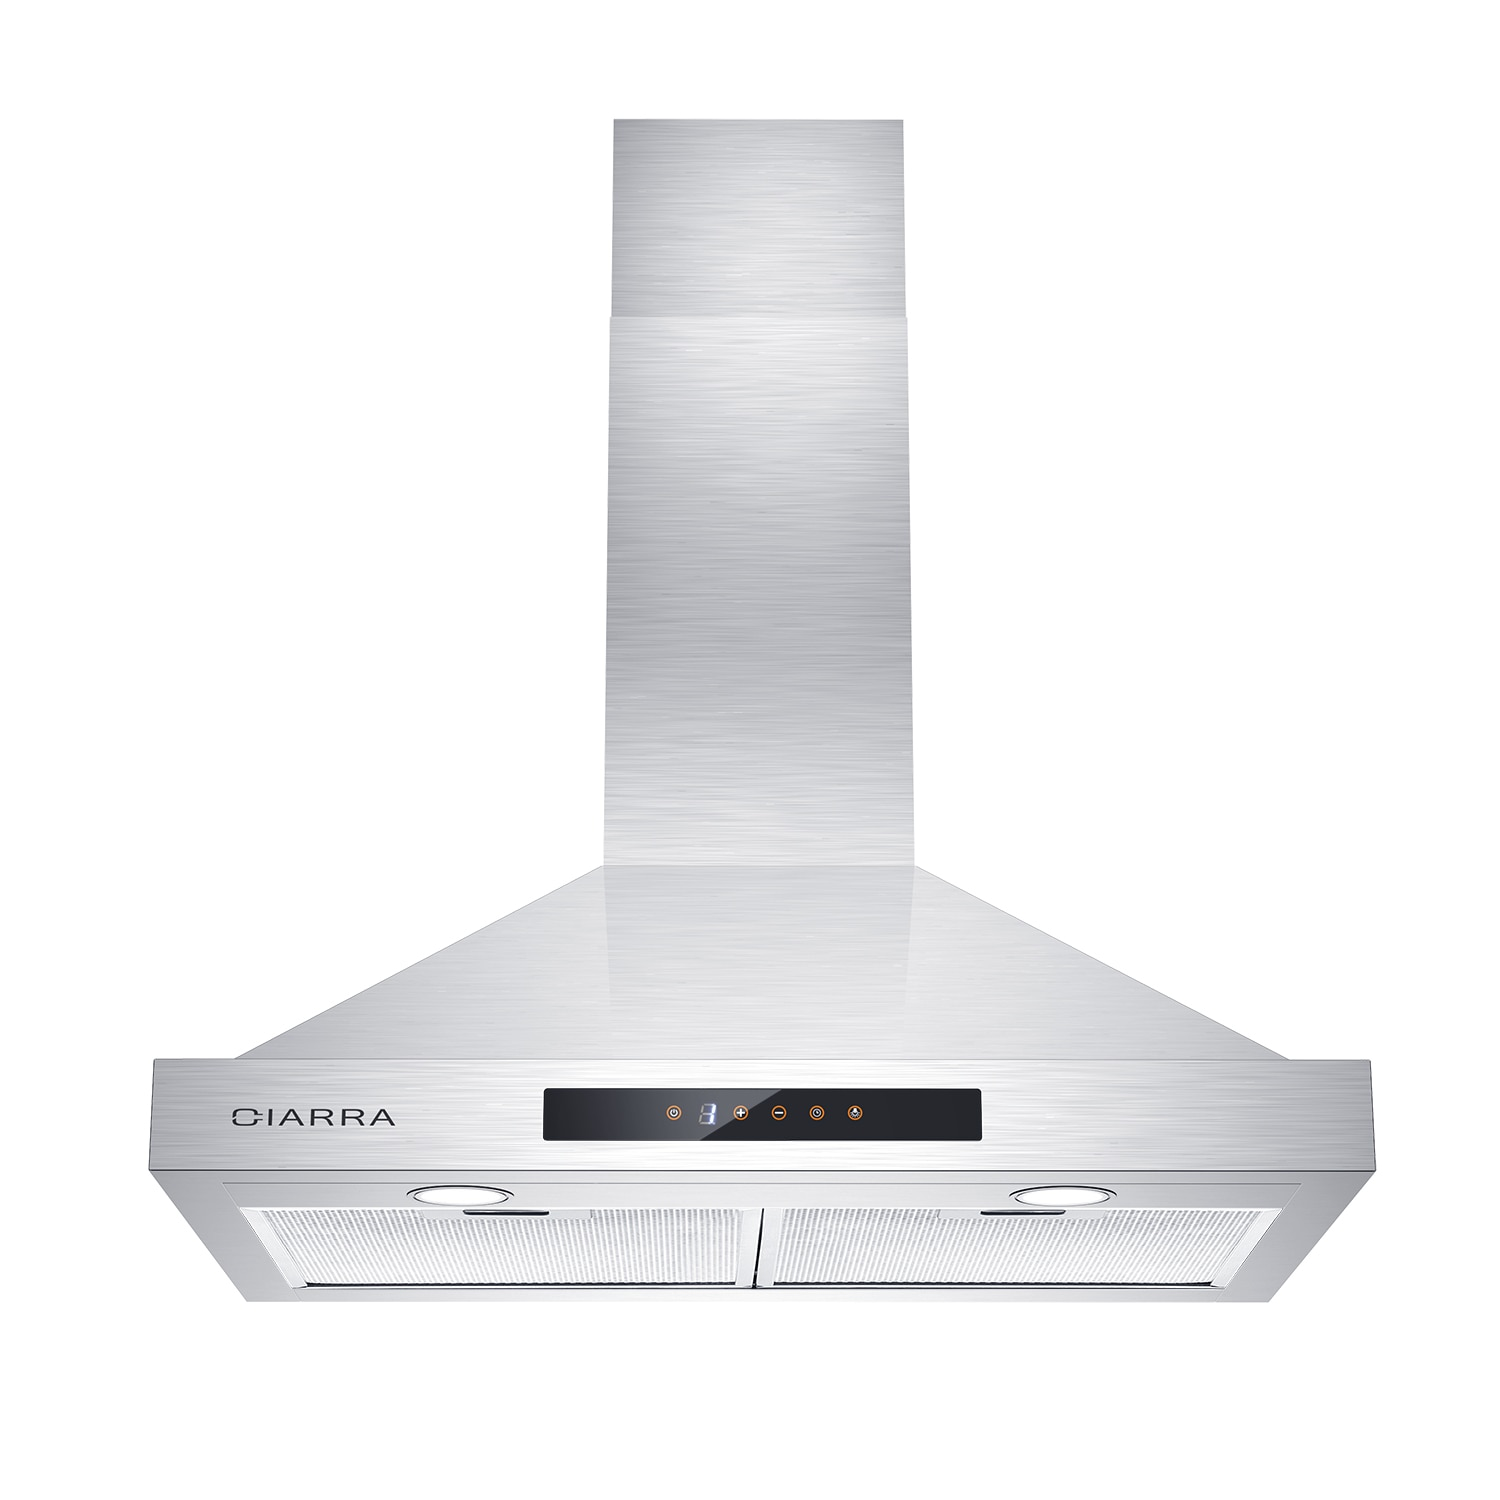 CIARRA CAS75308 30inch Range Hood, 450 CFM Stainless Steel Vent with 3 Speed Exhausted Fan, Touch Control Wall Mounted